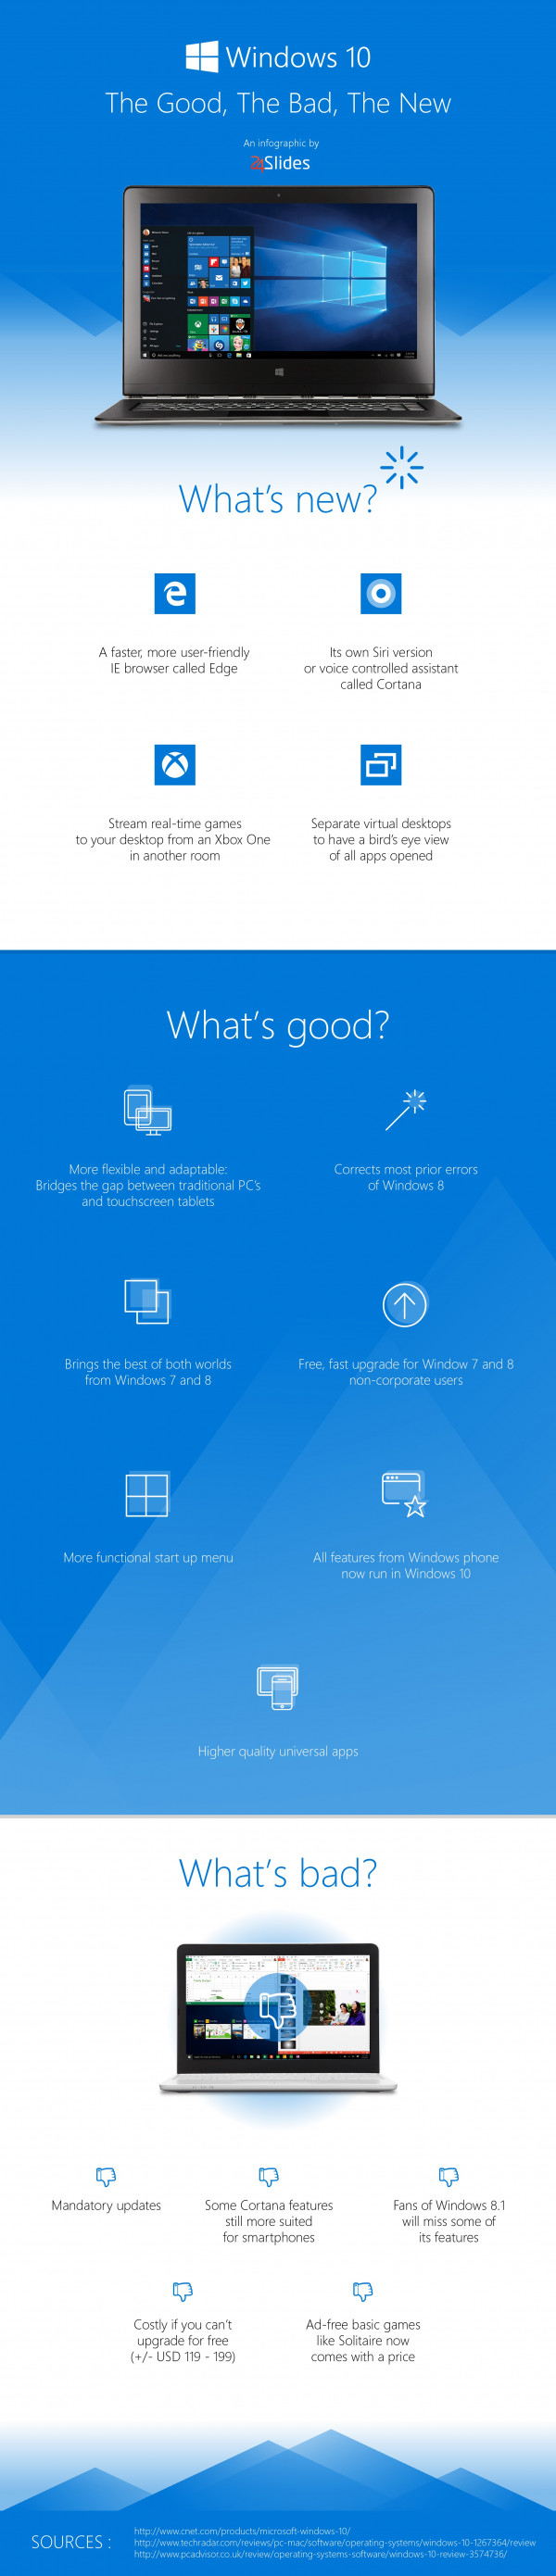 Windows 10: The Good, The Bad, The New